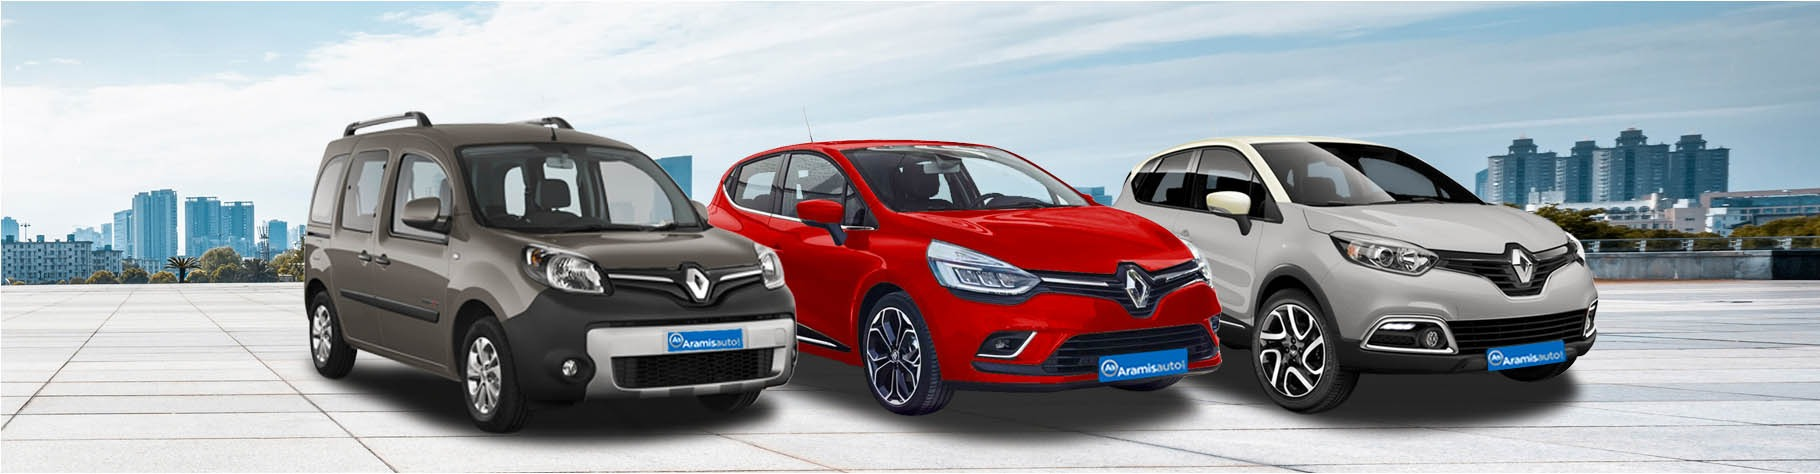 Guide d'achat Renault